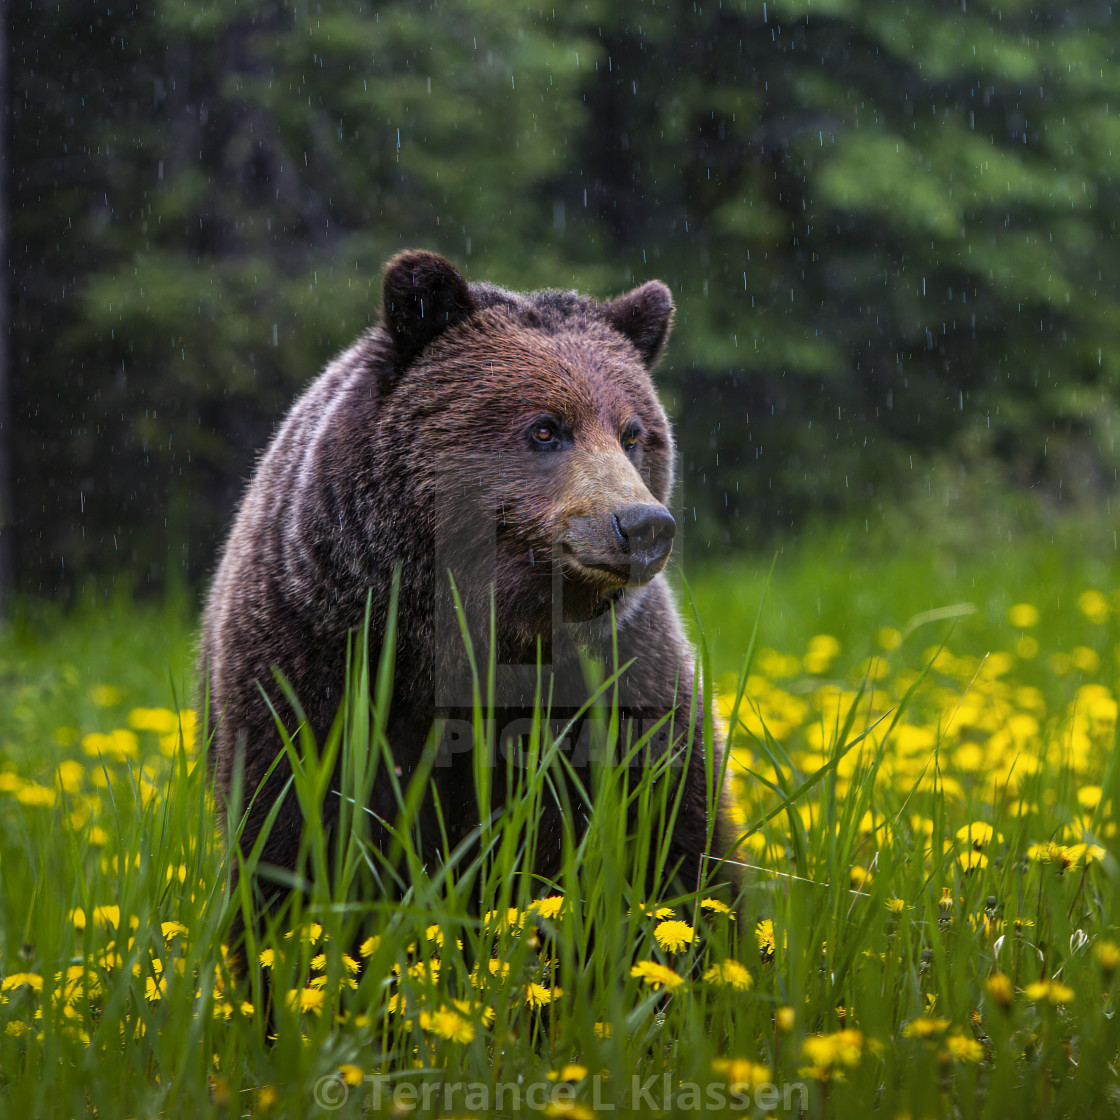 """""""A grizzly bear in the rain in a field of dandelions in Jasper National Park, Alberta, Canada."""" stock image"""